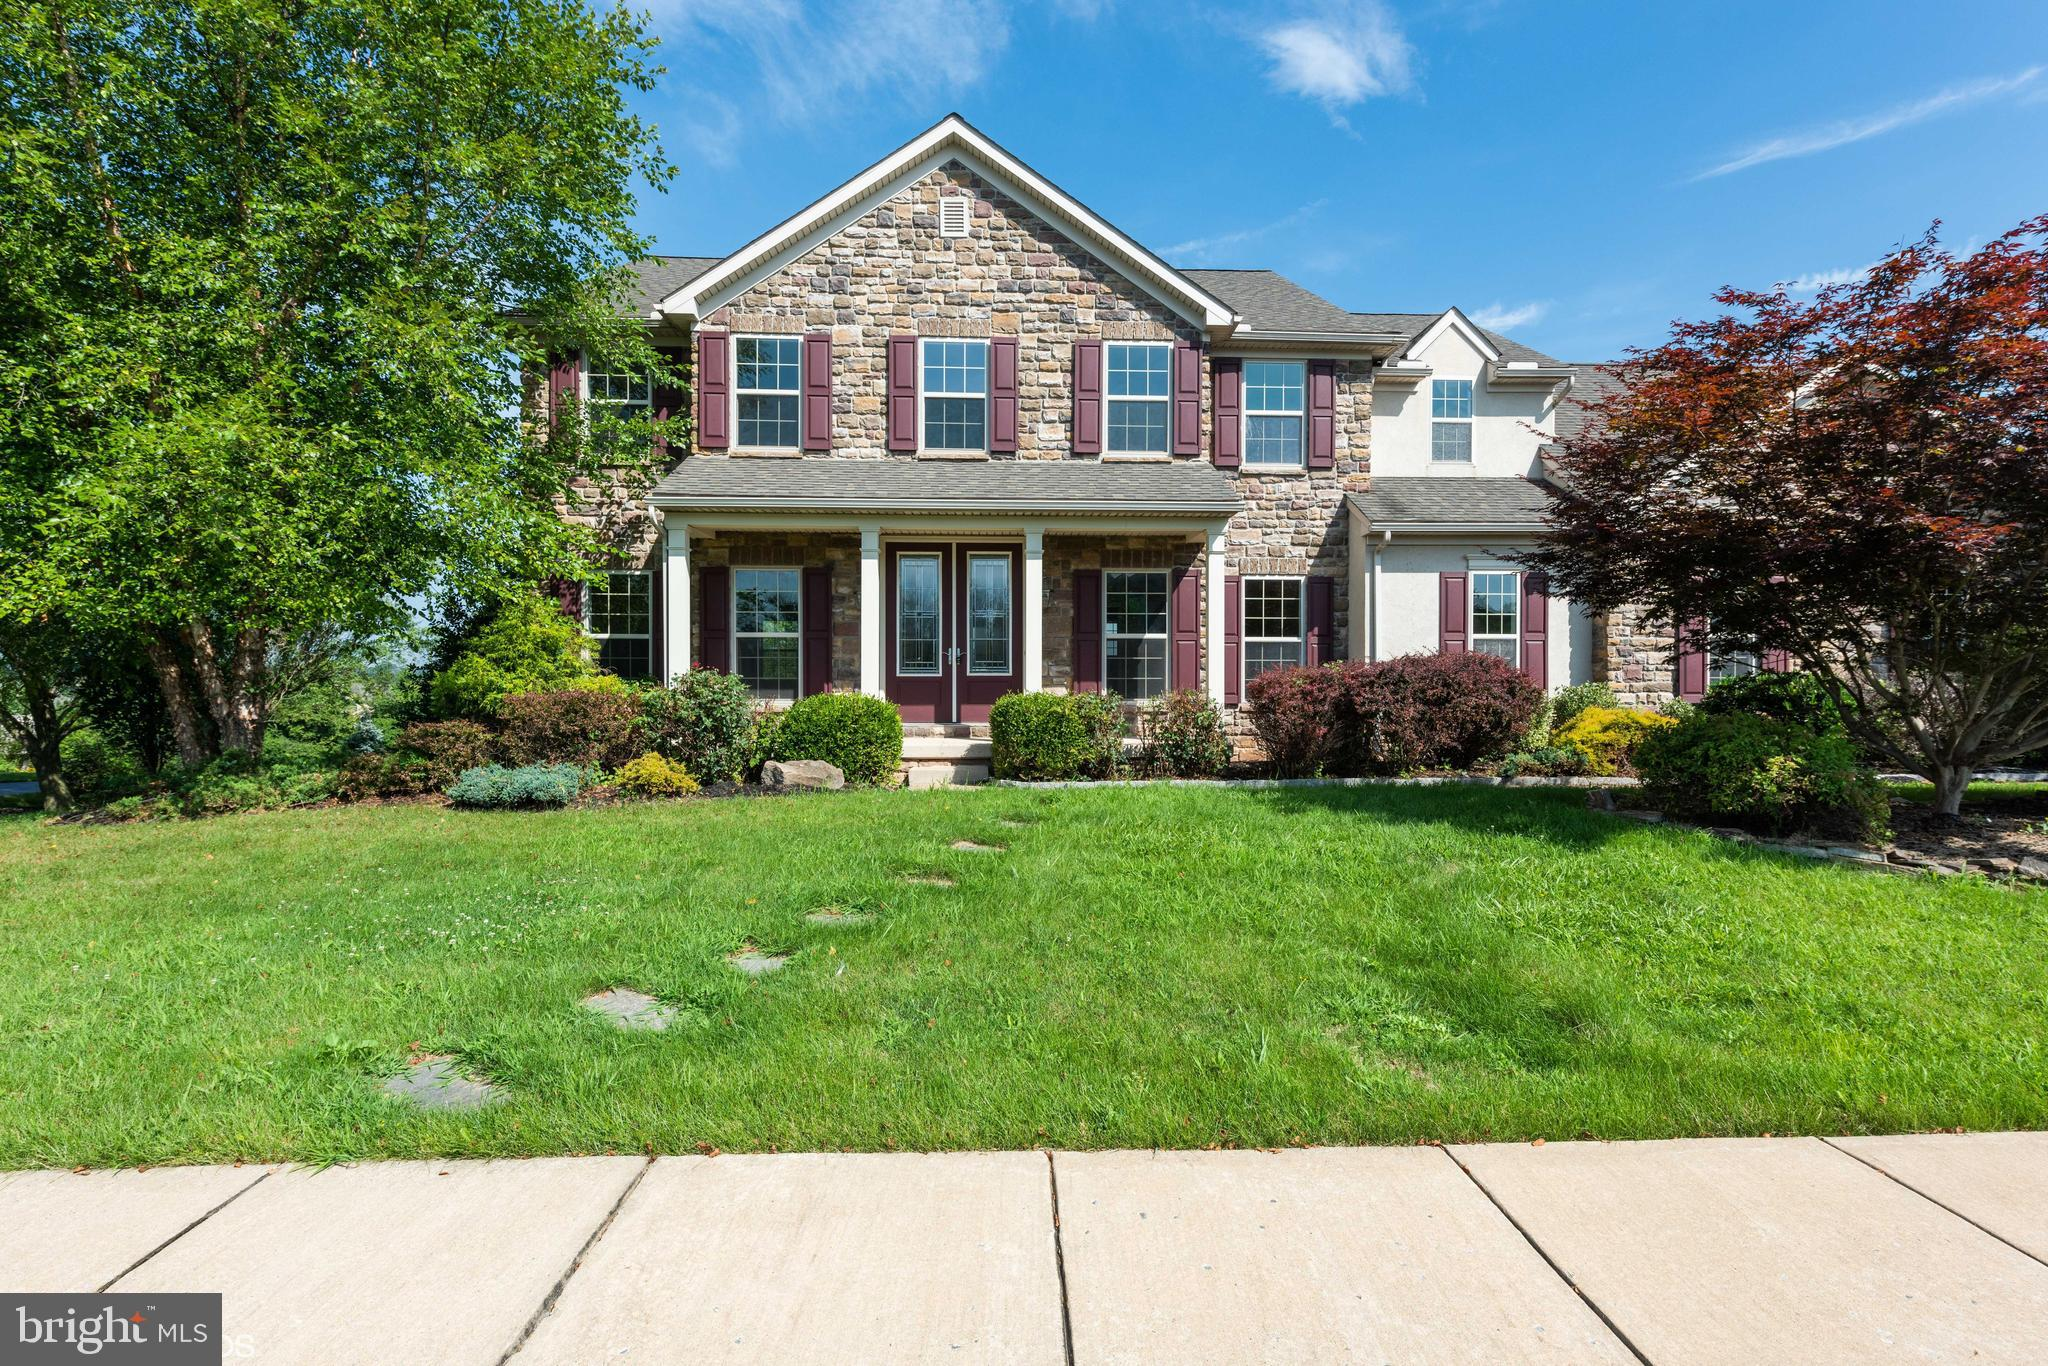 1259 AYLESBURY LANE, YORK, PA 17404